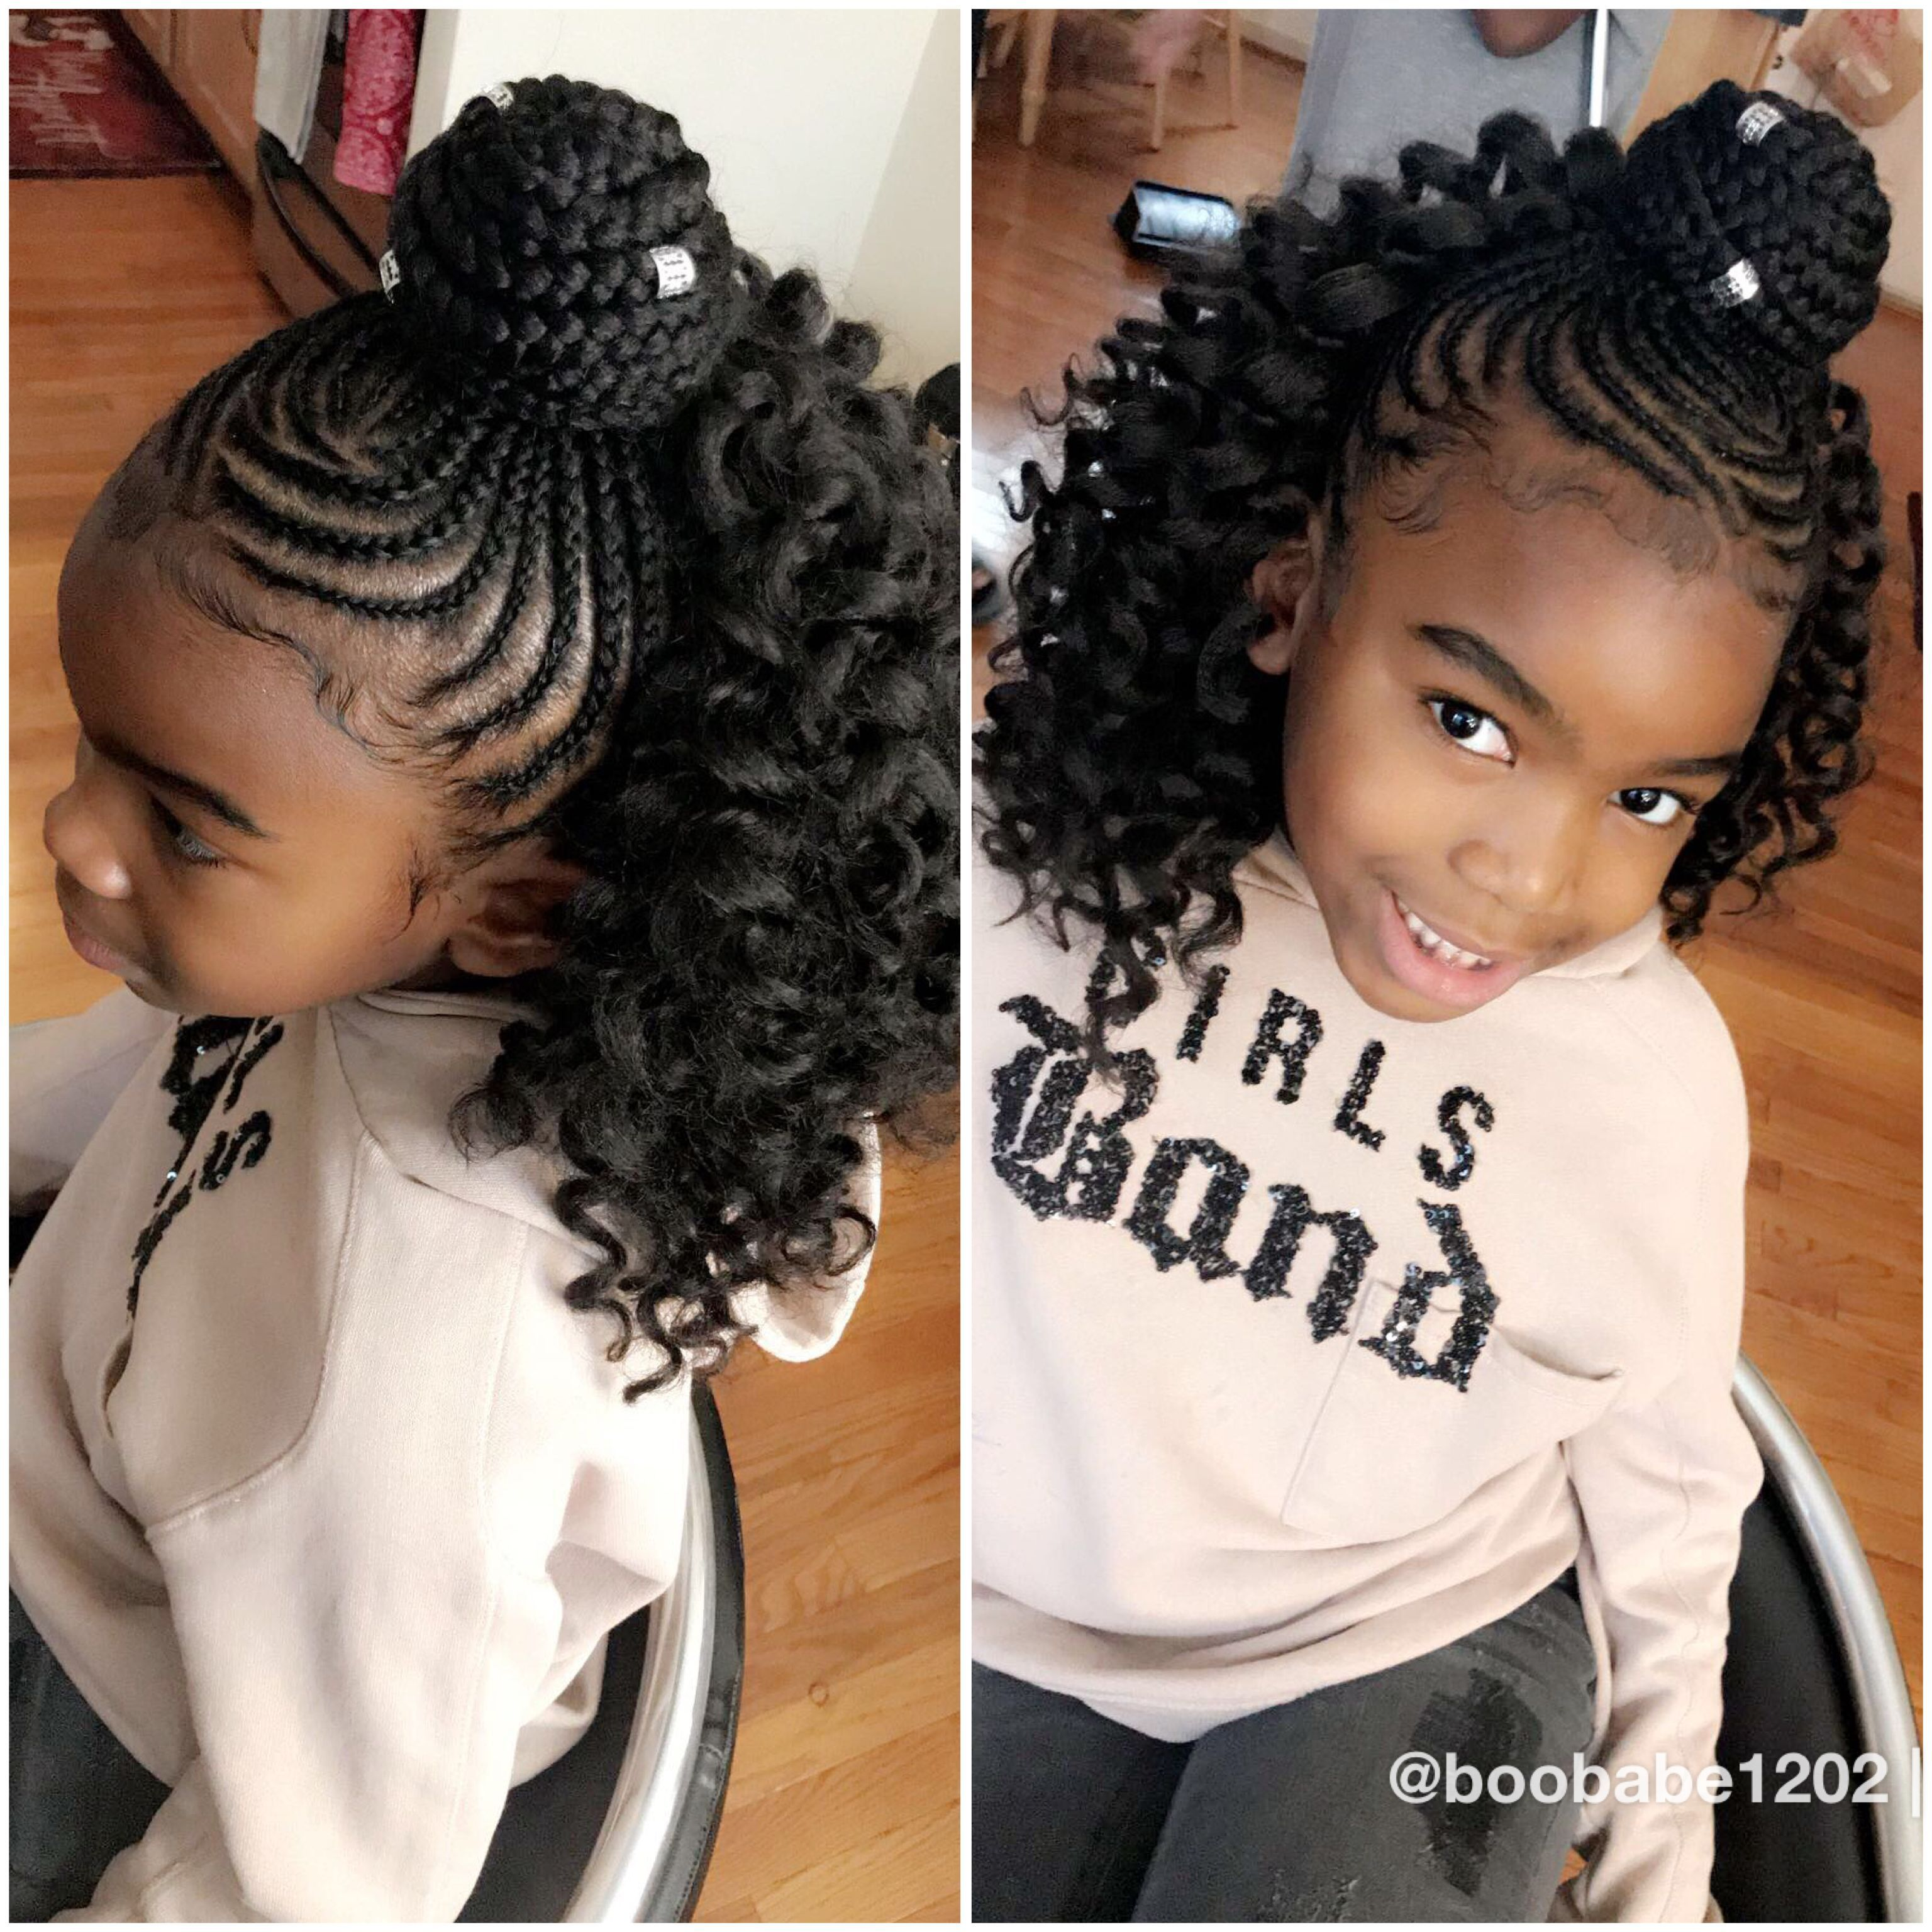 Crochet Hair Styles For Kids Loc Styles For Women In 2020 Kids Hairstyles Natural Hairstyles For Kids Hair Styles